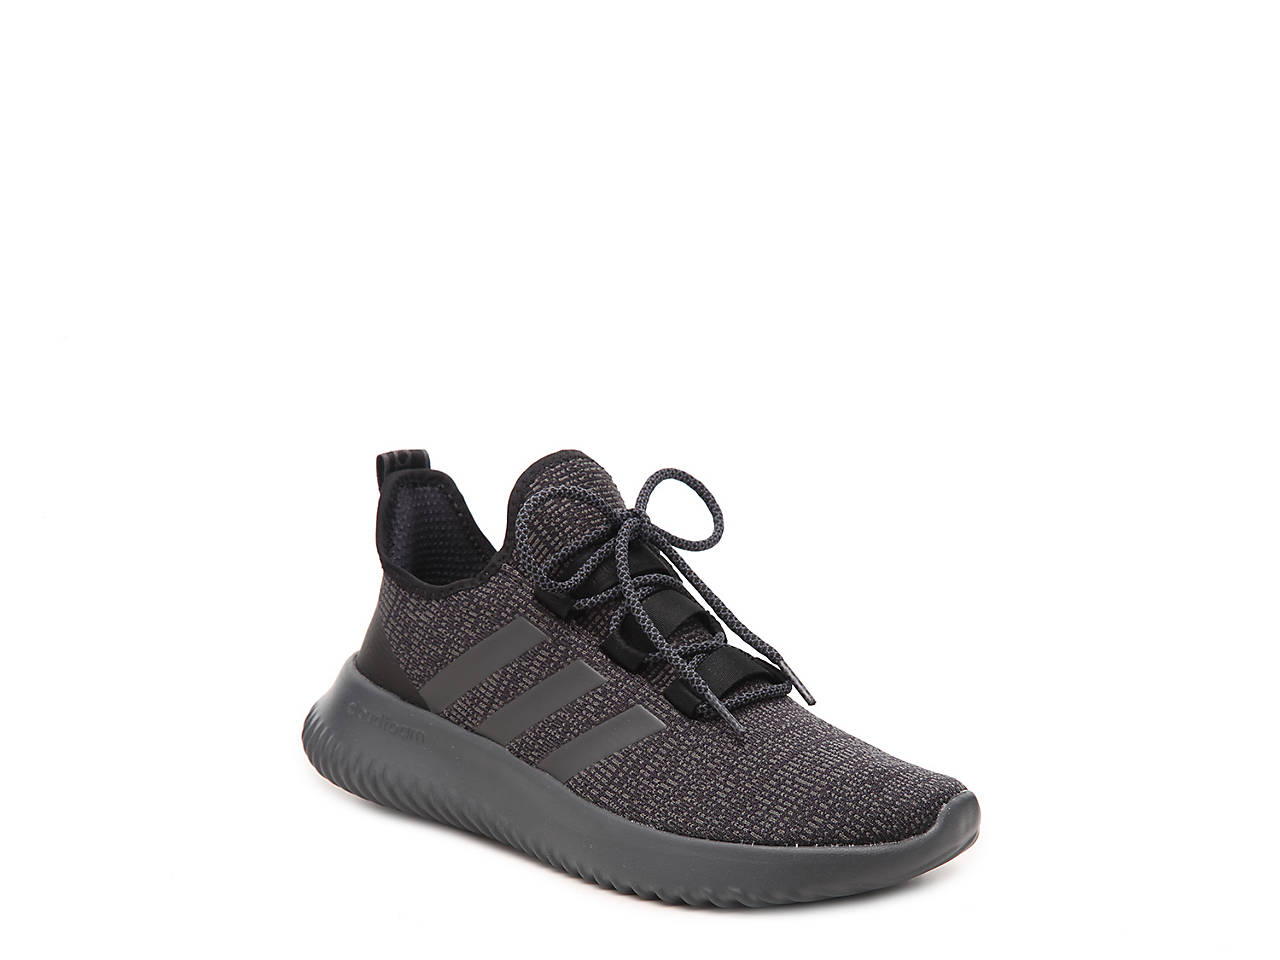 Adidas Wide Width Mens Shoes Size Conversion Adidas Kids